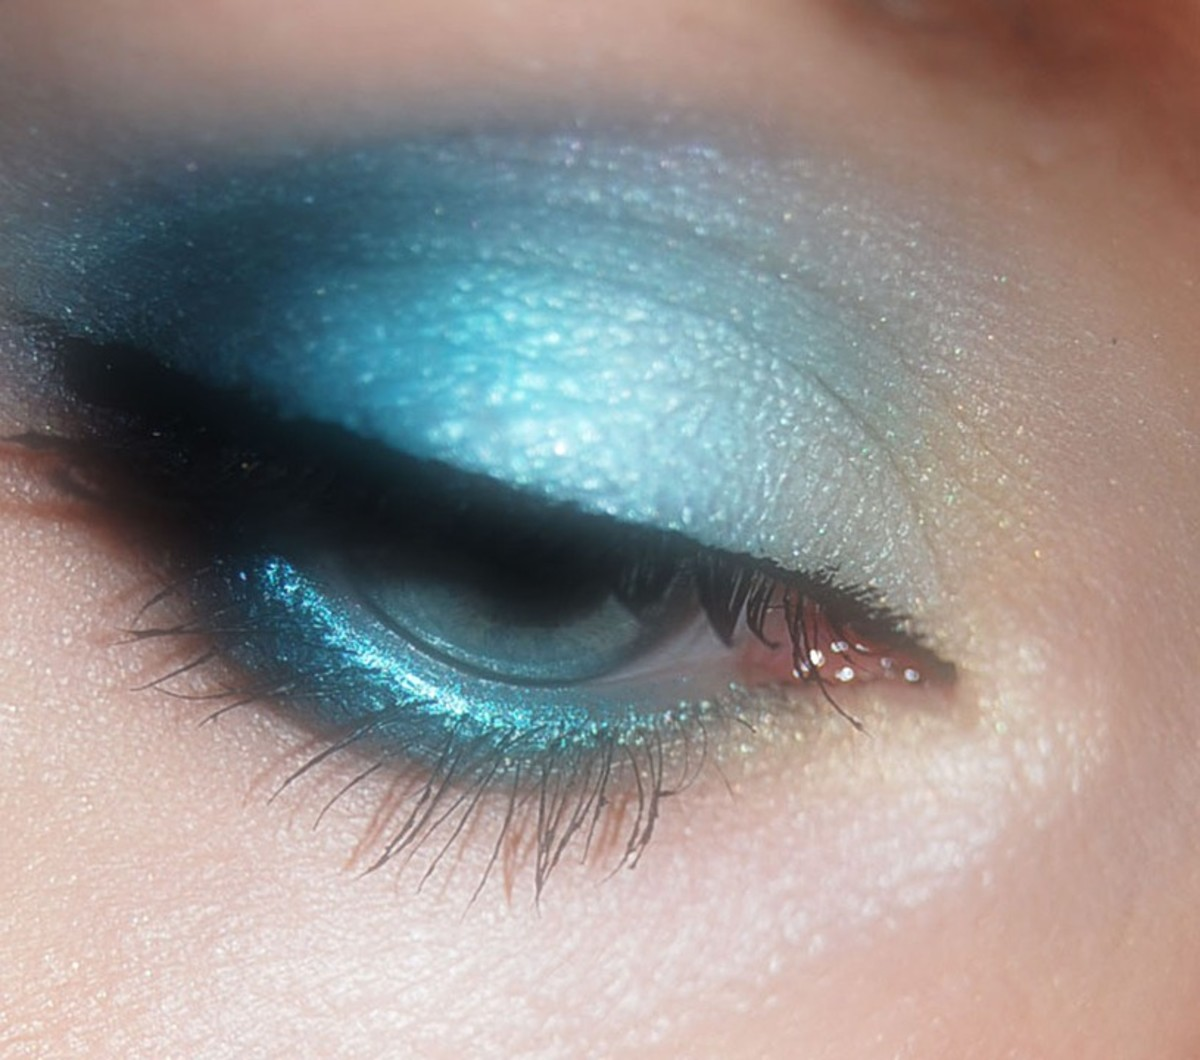 Though eye shadow was popular in many shades, nothing says 80s quite like blue eyeshadow.